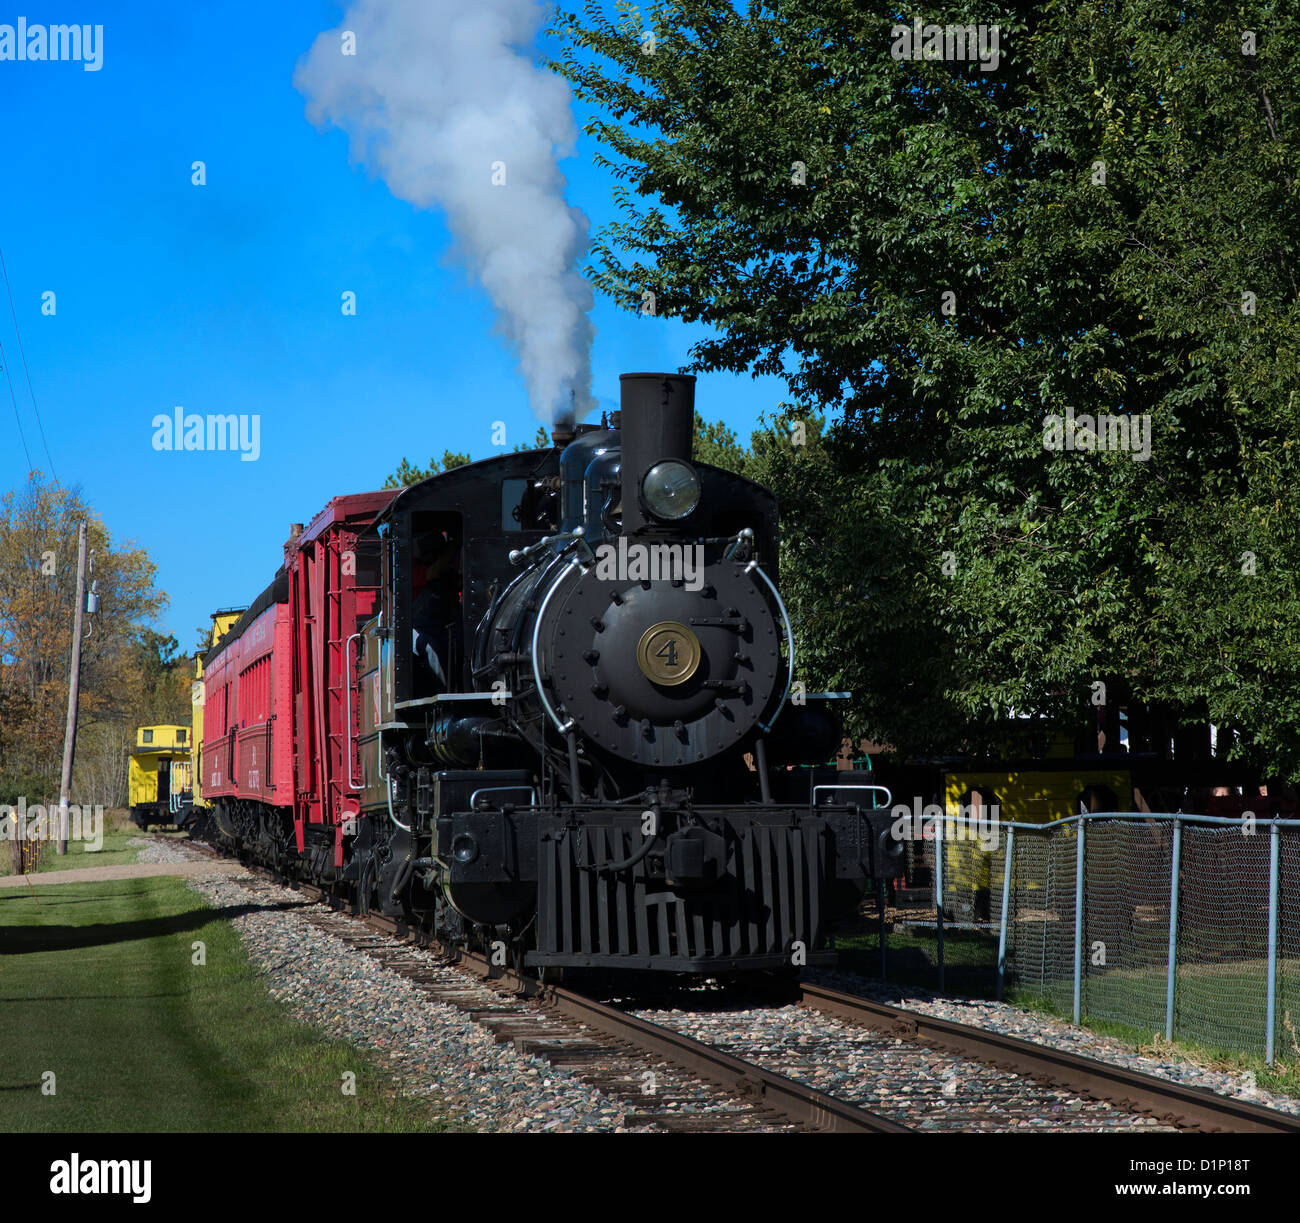 The Lumberjack Steam Train in Laona, Wisconsin is a vintage steam train which takes visitors to the Camp 5 Logging - Stock Image